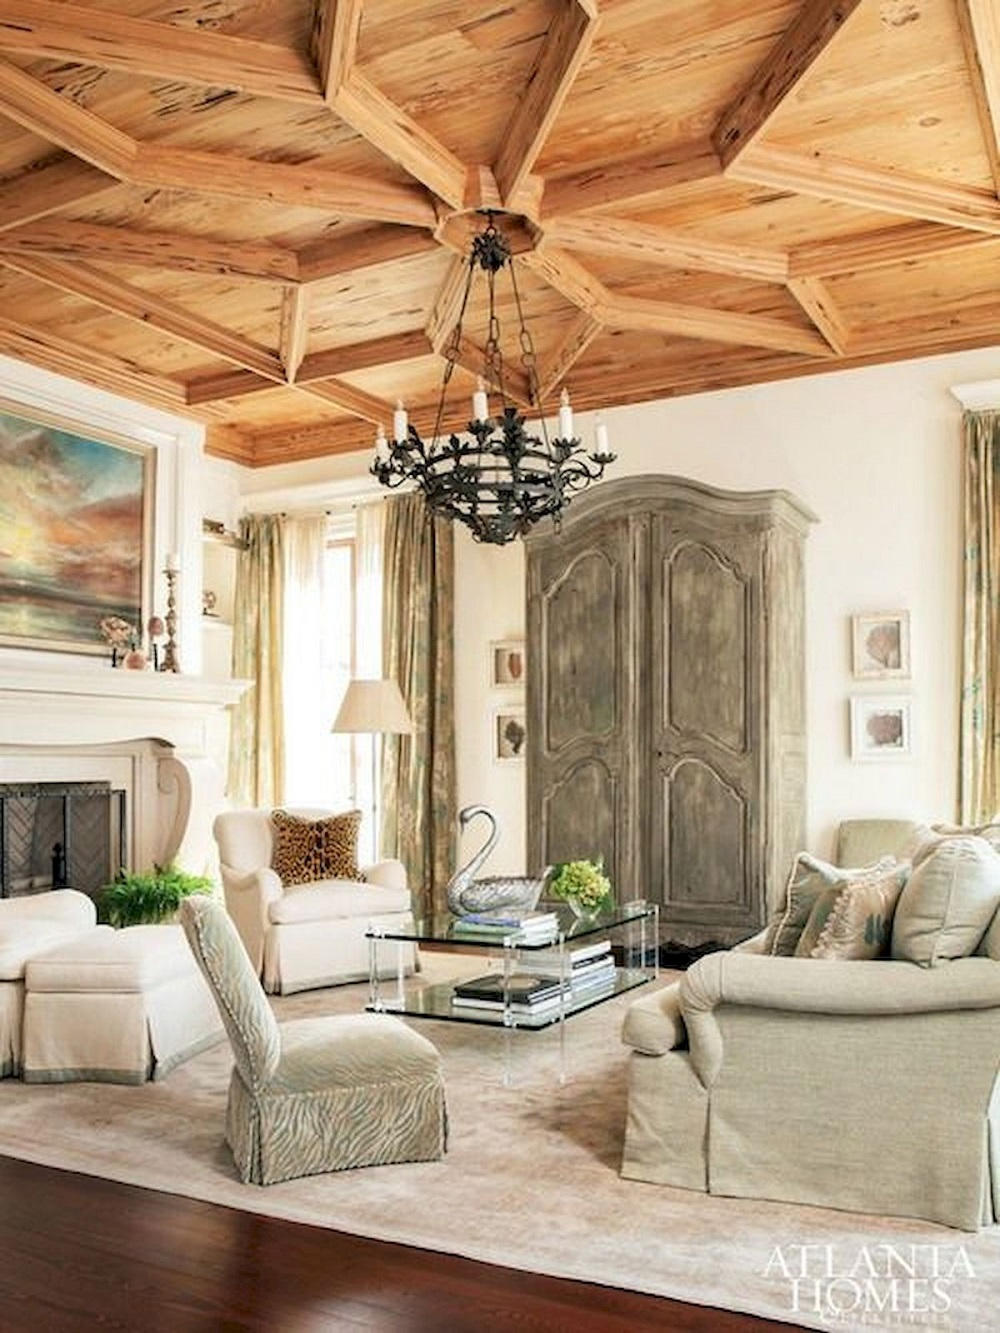 Ceil12 Great ideas for coffered ceilings that you can try and the costs involved